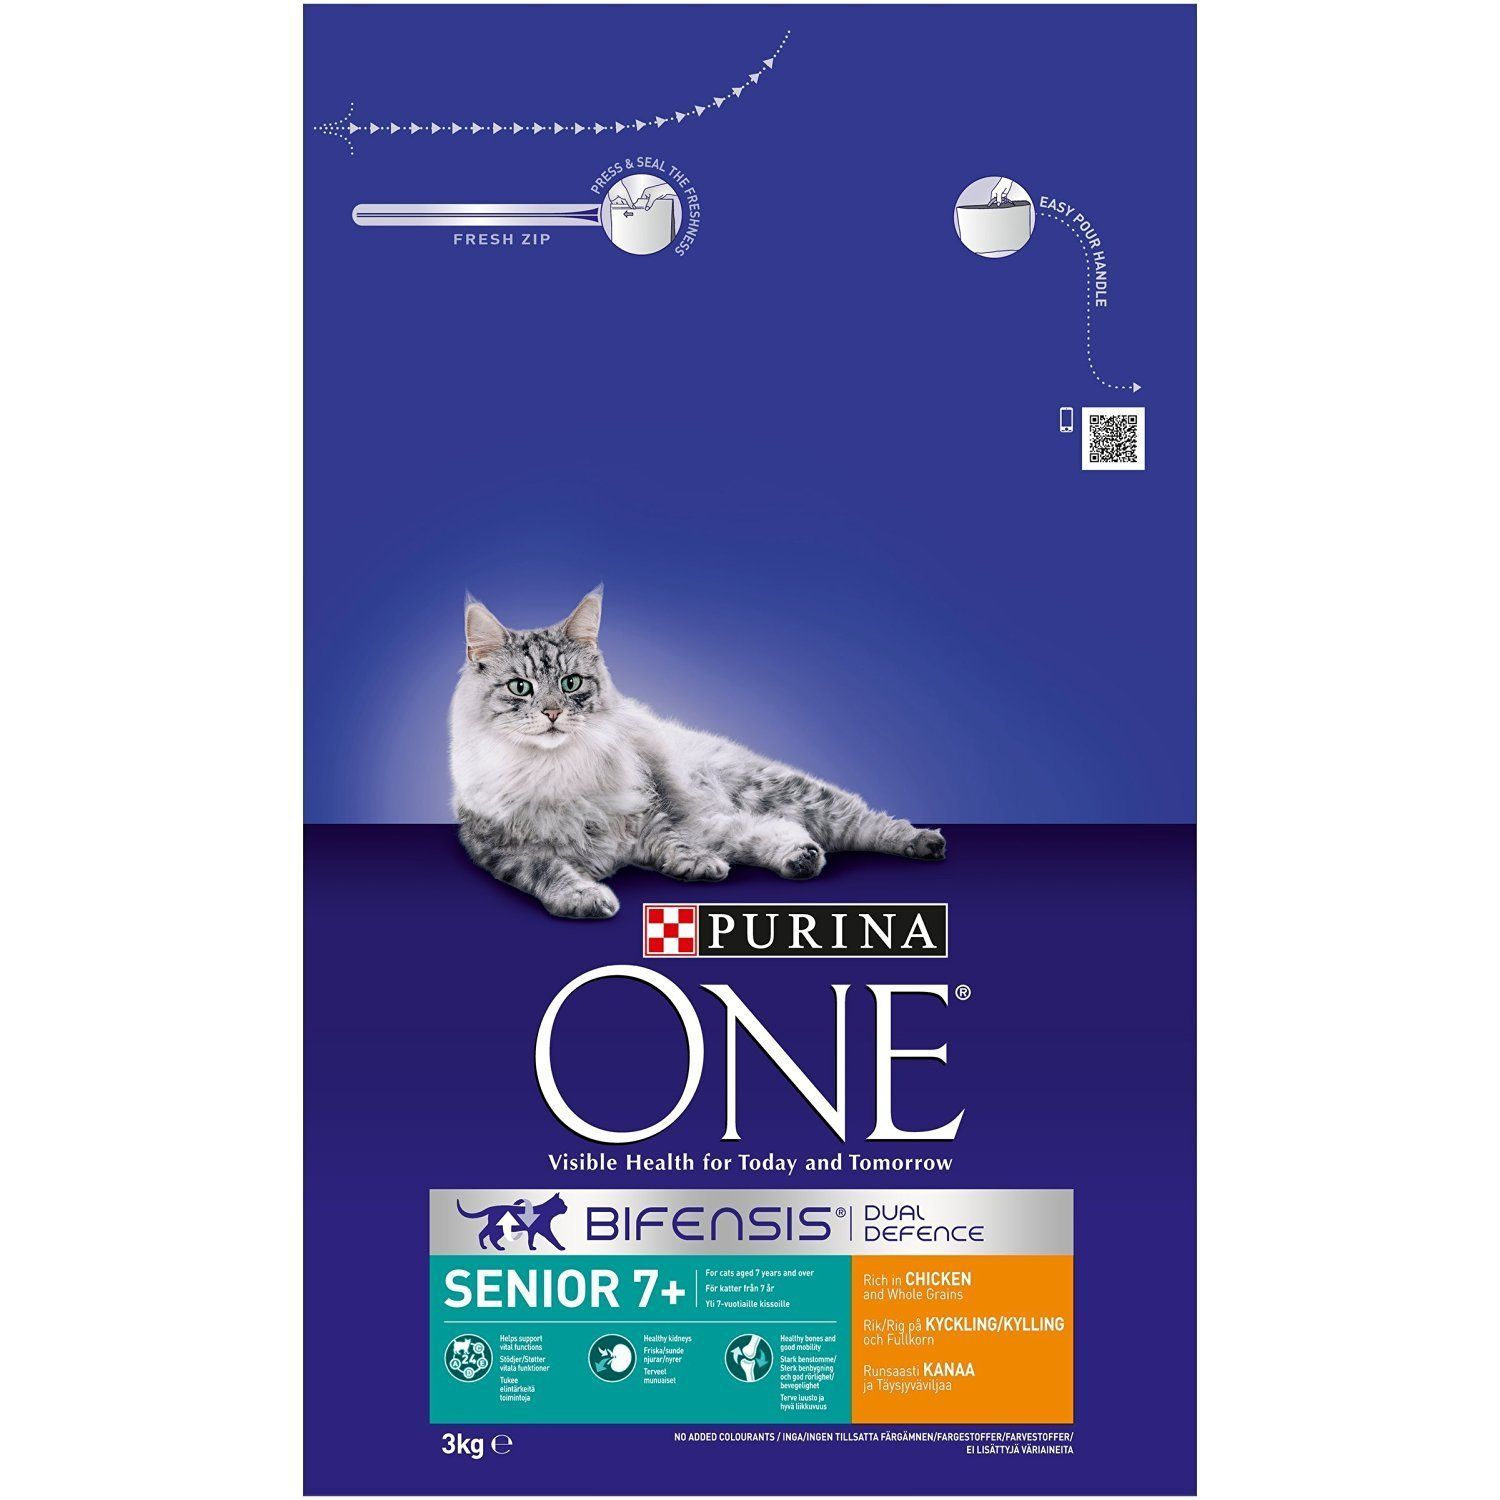 Purina One Senior 7 Rich In Chicken and Whole Grains 3kg